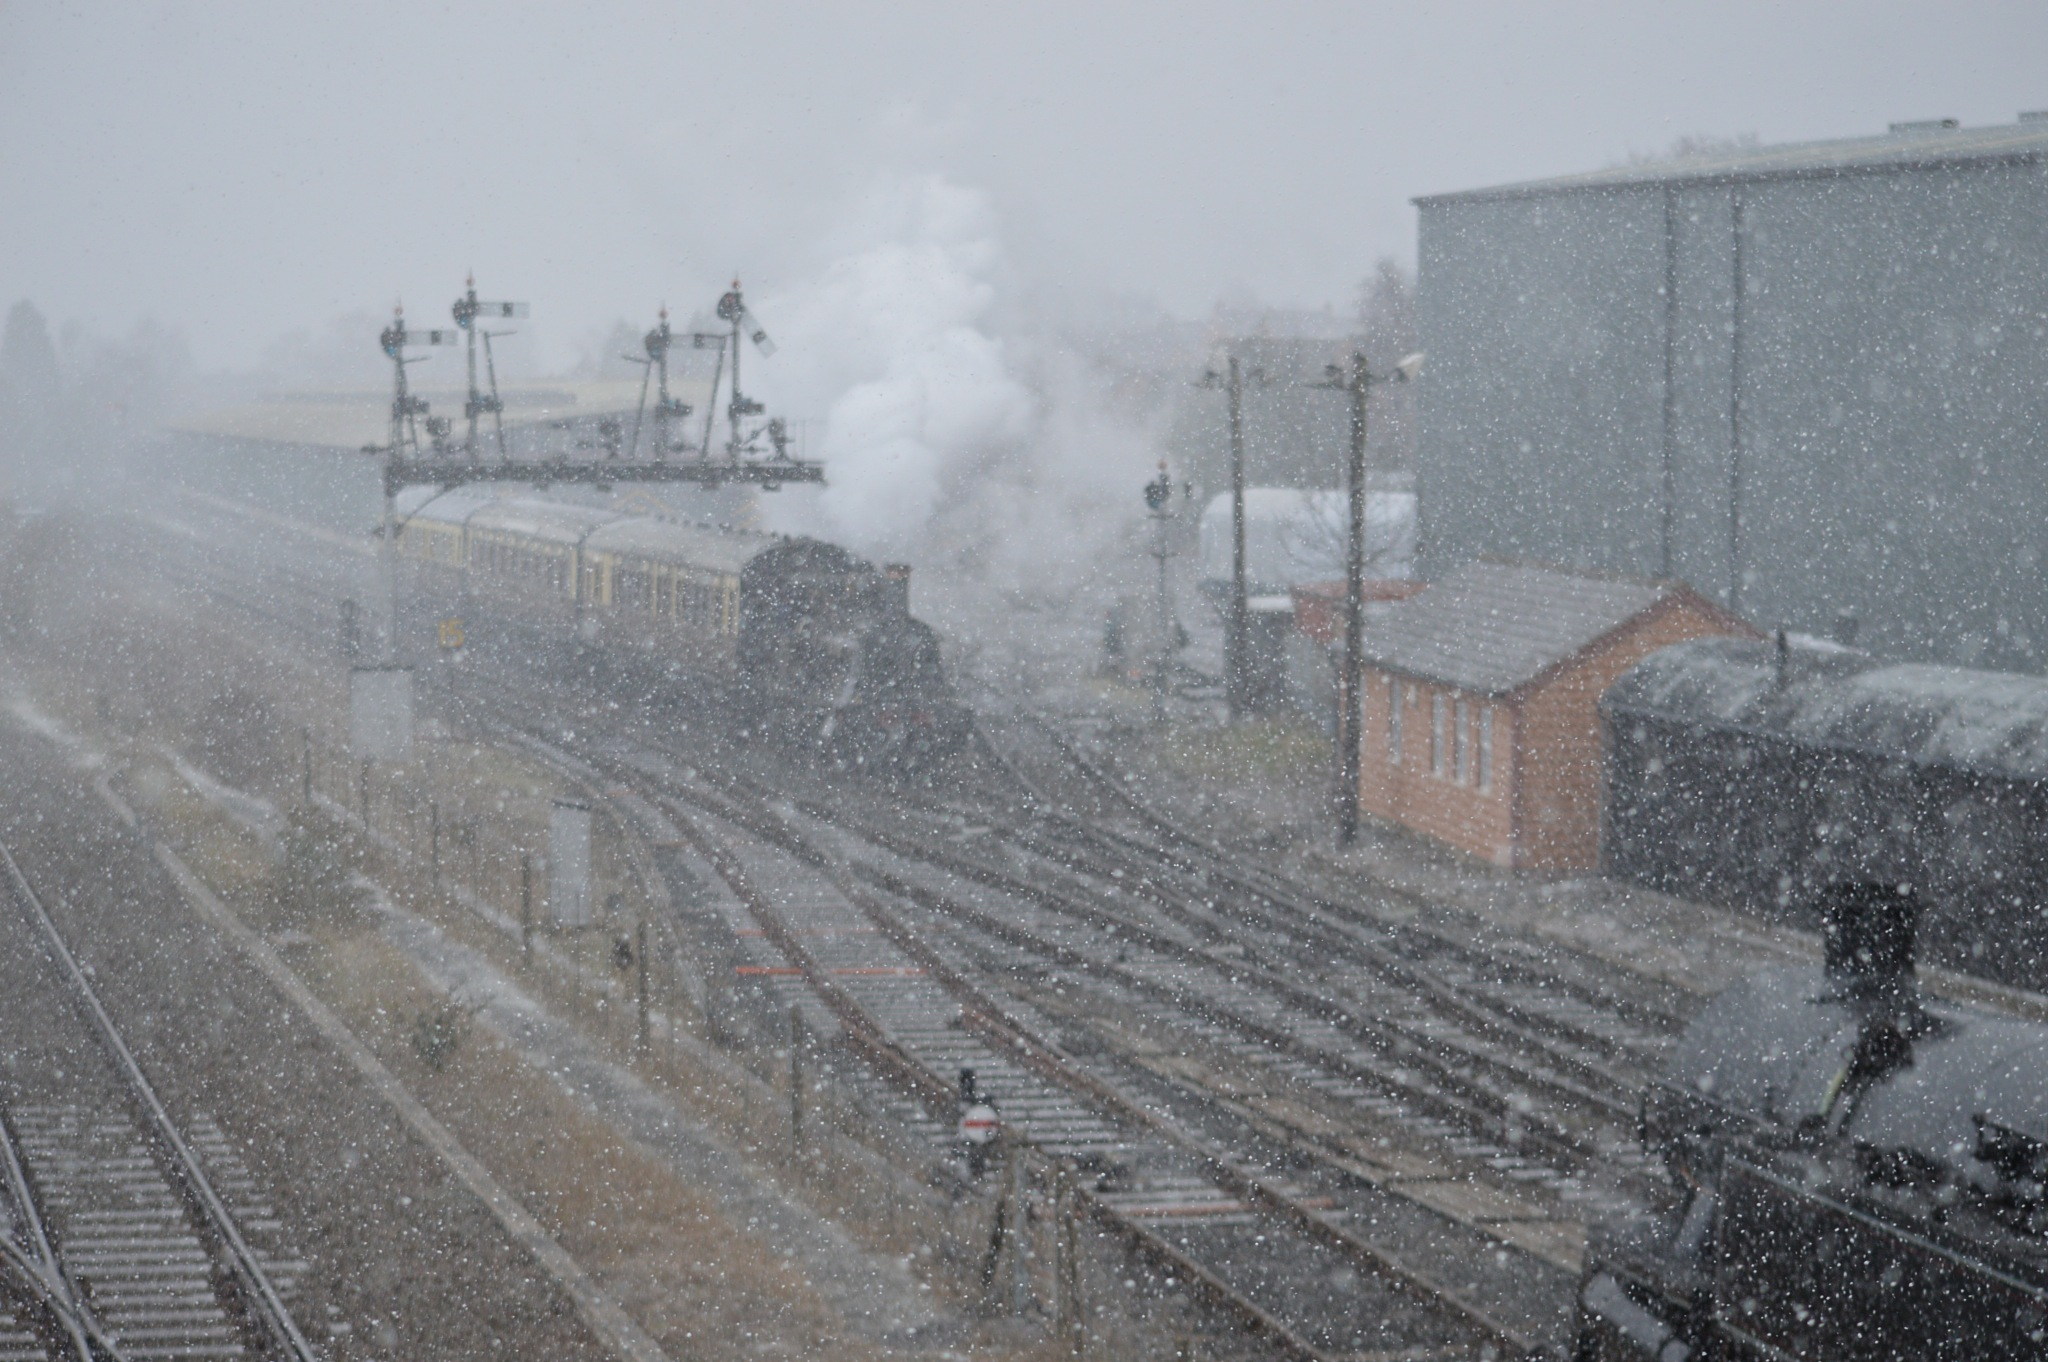 trains in snow storm by adrian.williams.58323